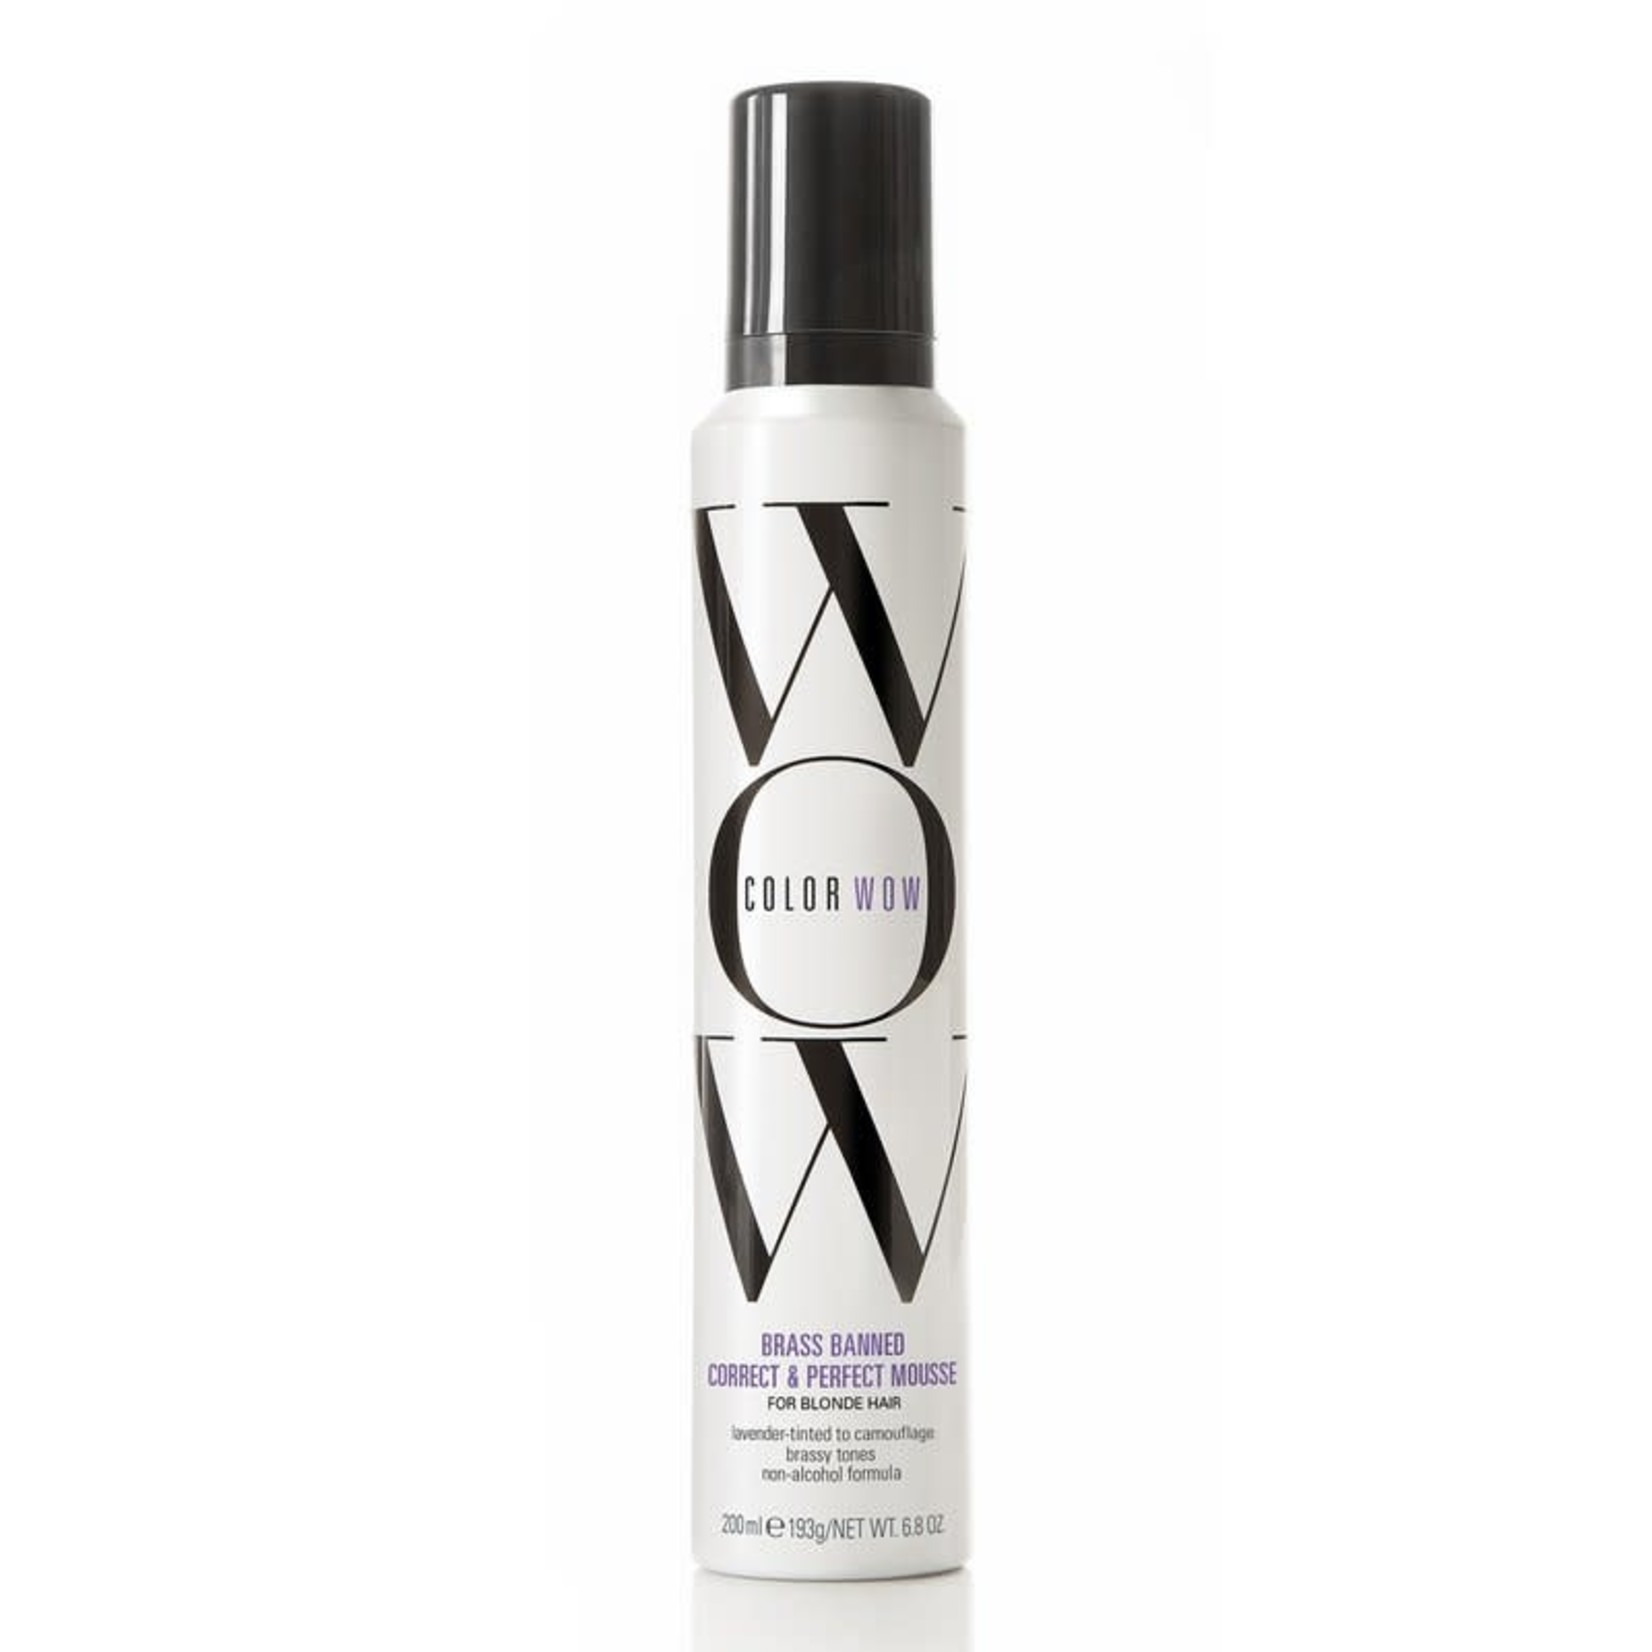 COLOR WOW BRASS BANNED MOUSSE